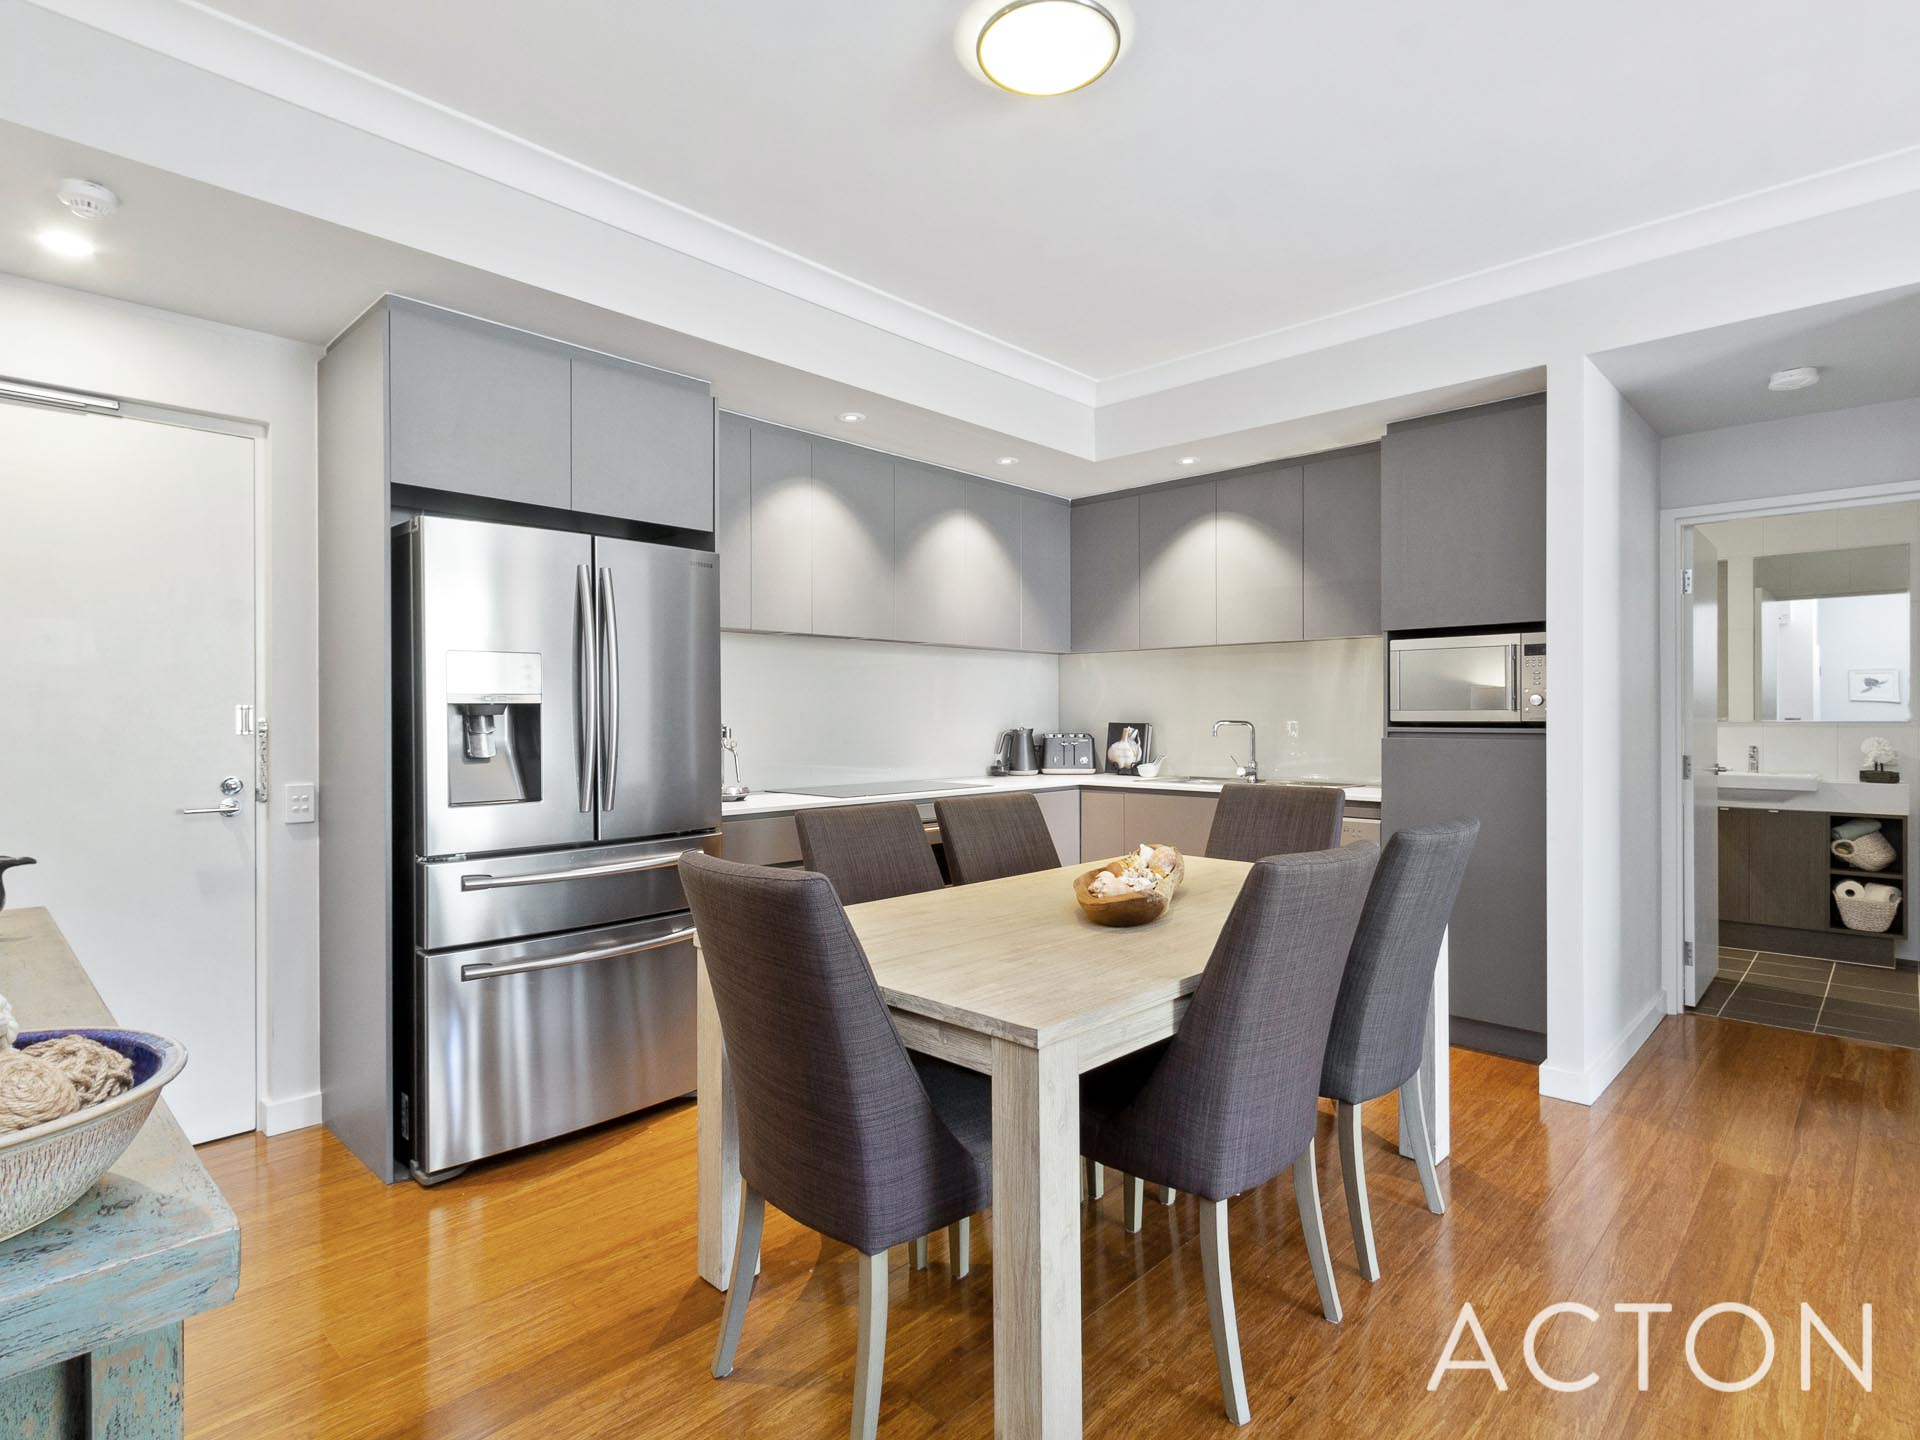 18/2 Dynevor Rise Floreat - House For Sale - 20560942 - ACTON North